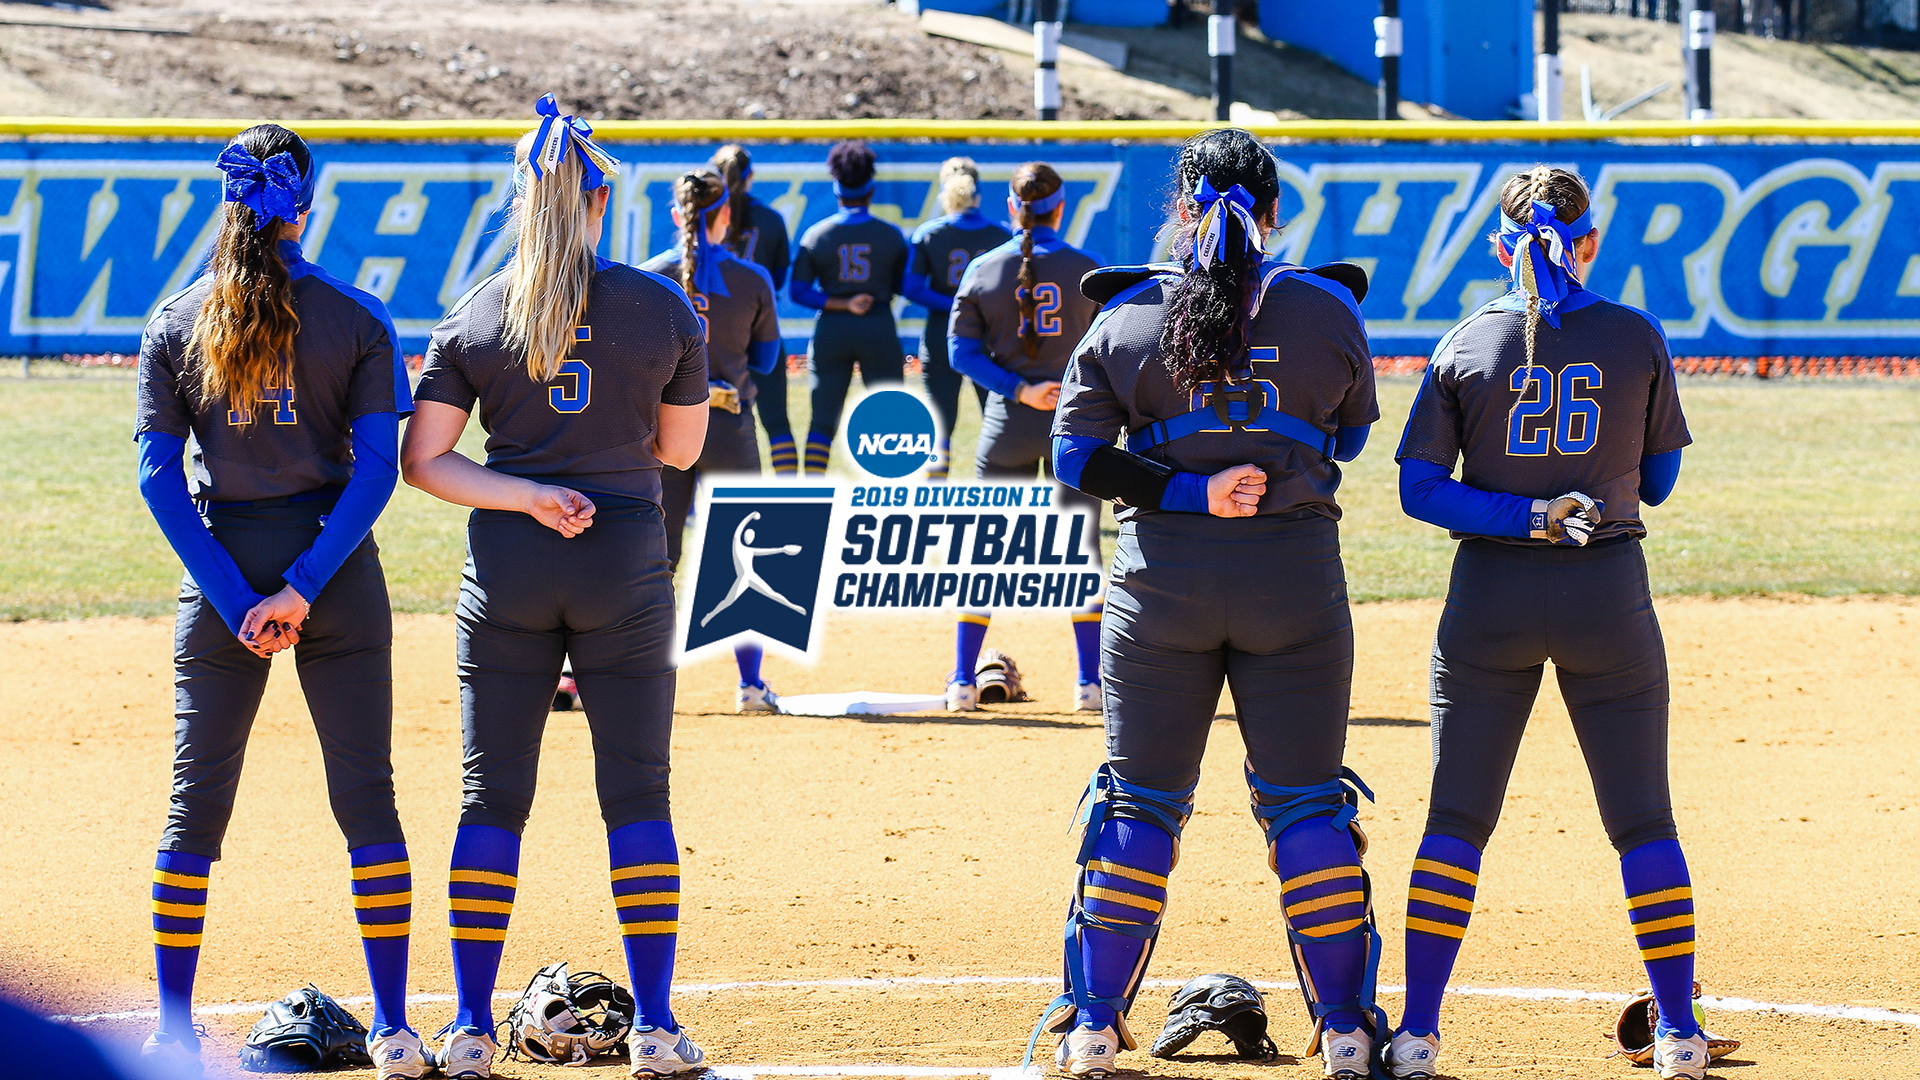 Softball Is Going Dancing Chargers Earn Seventh Seed In Upcoming